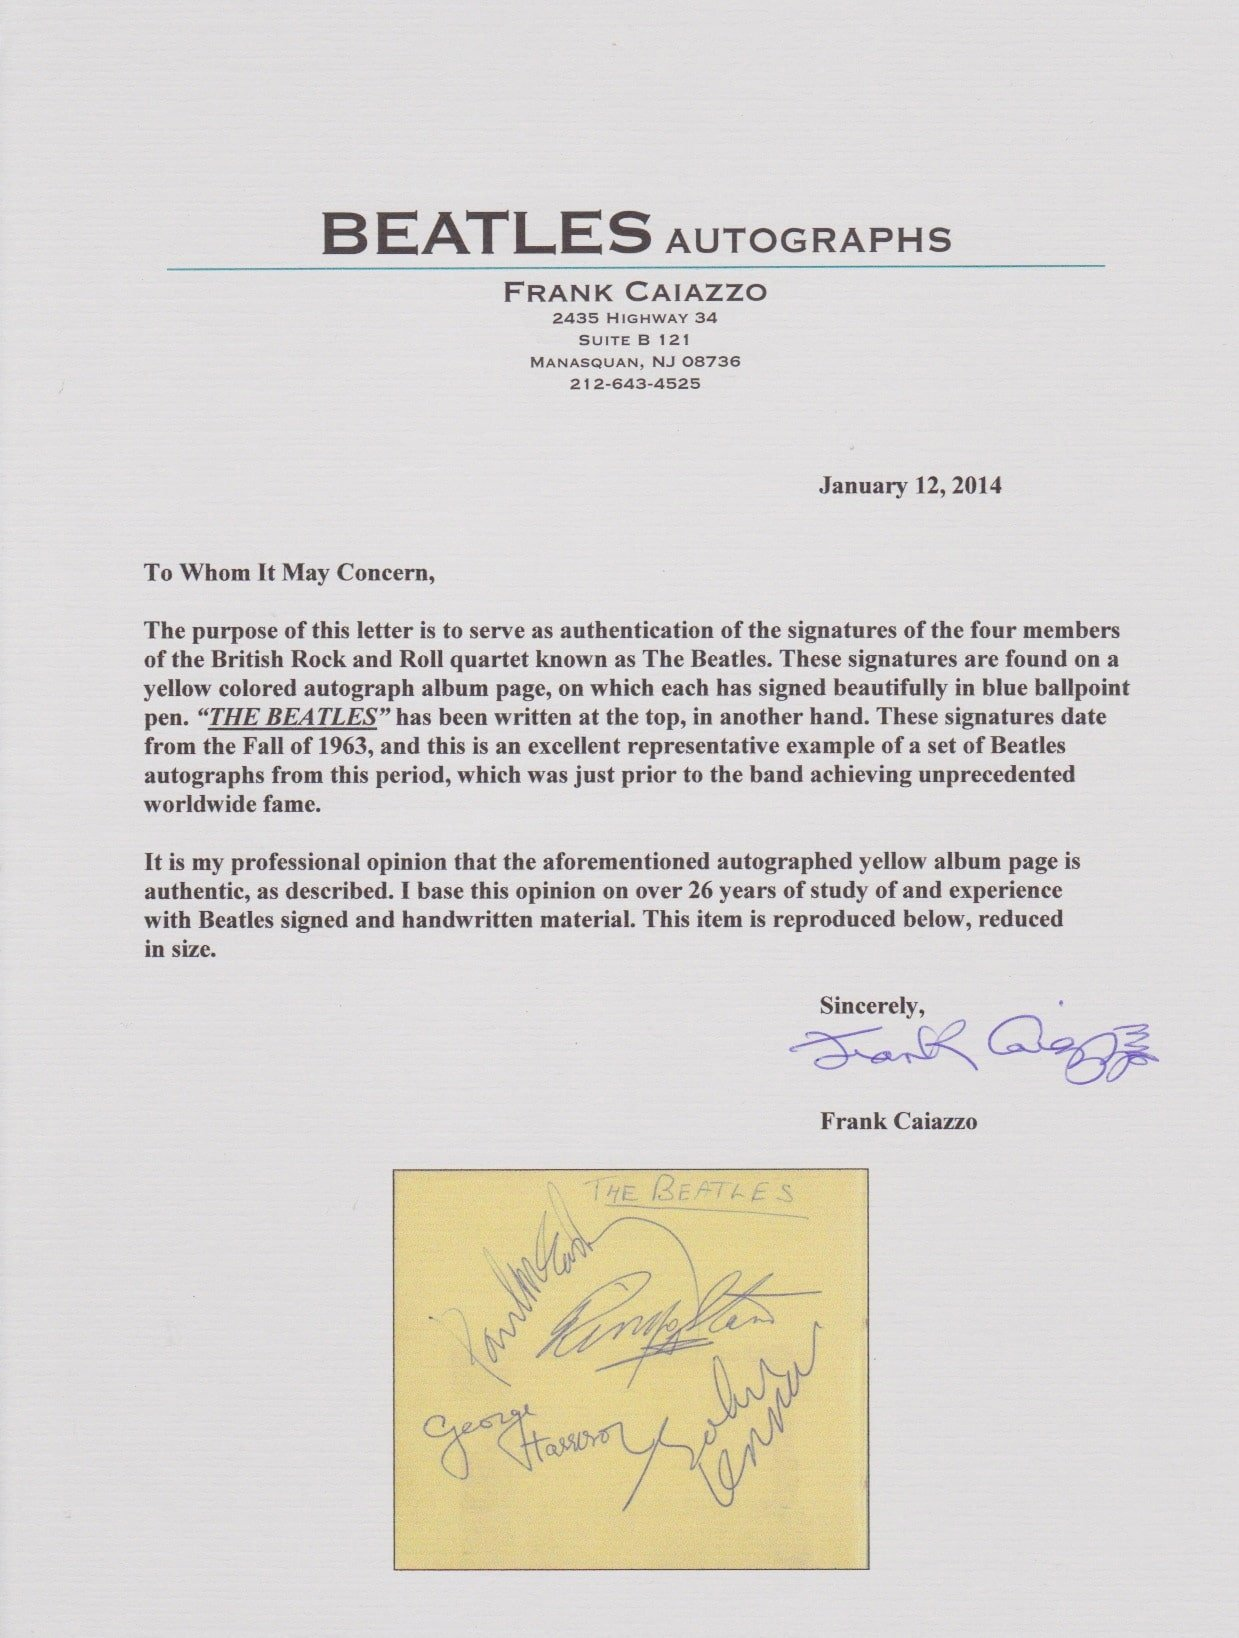 the beatles  u2013 1963 signed autograph book with frank